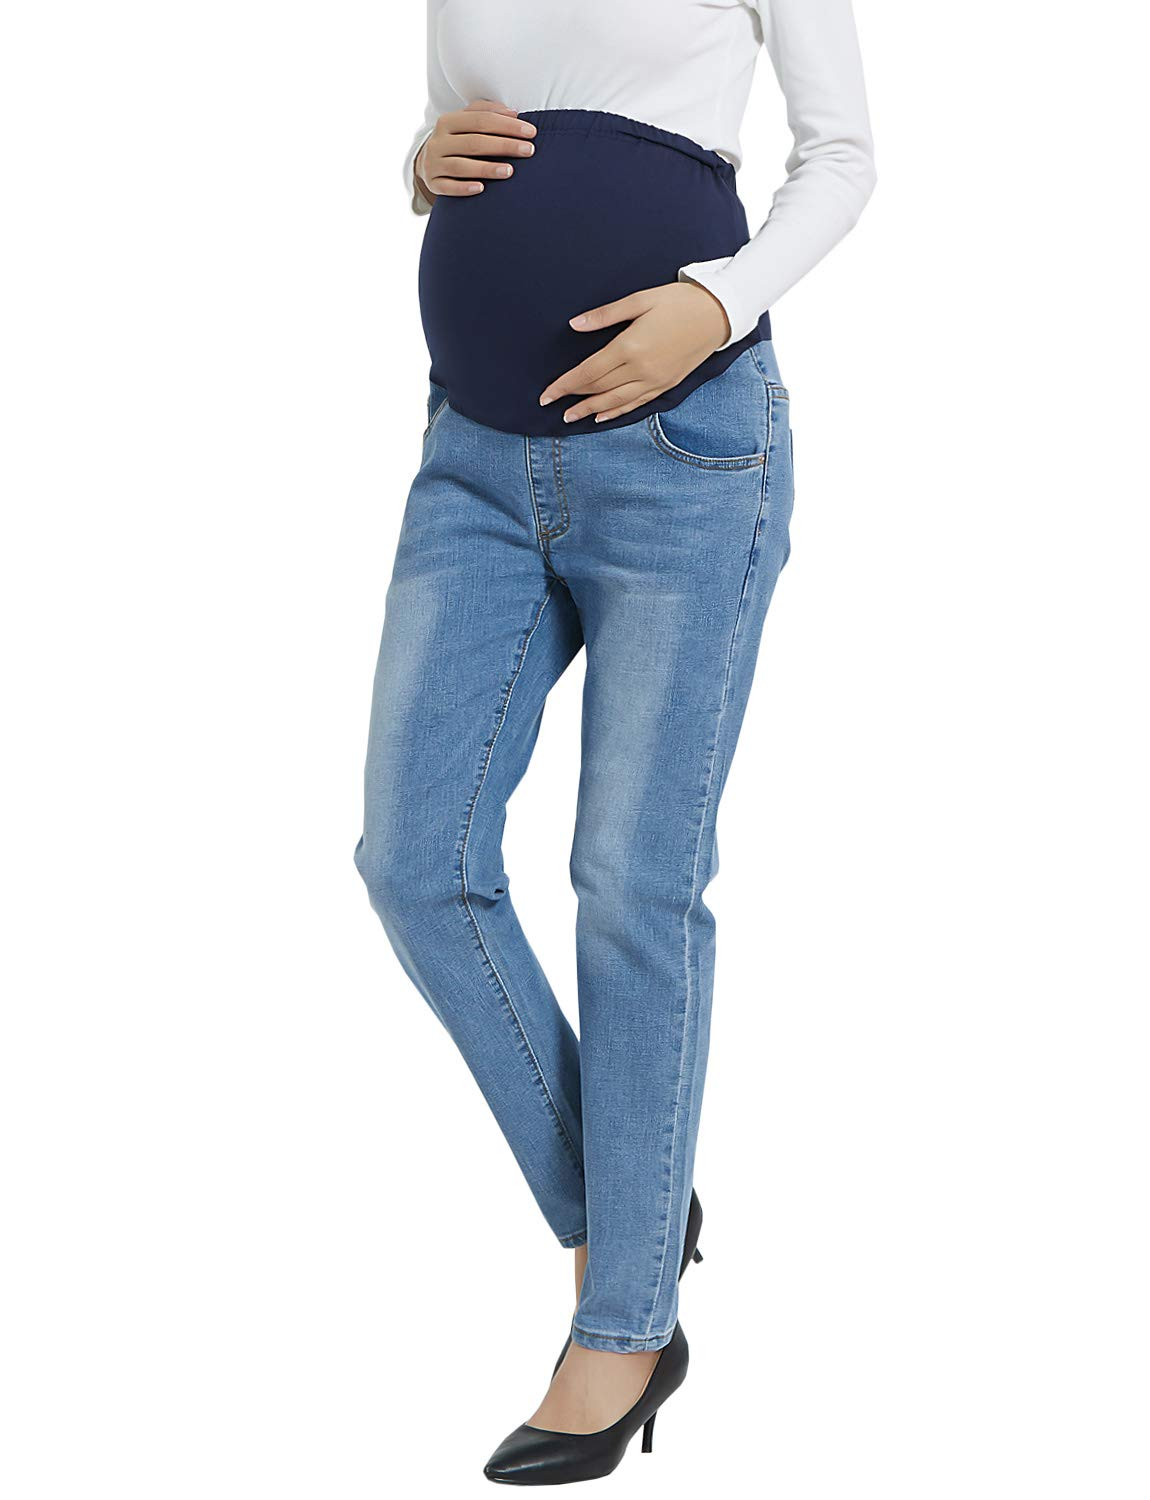 Maternity Jeans Over The Belly Leggings Stretchy Skinny Leg Pants Light Blue Jeans XL by Bhome